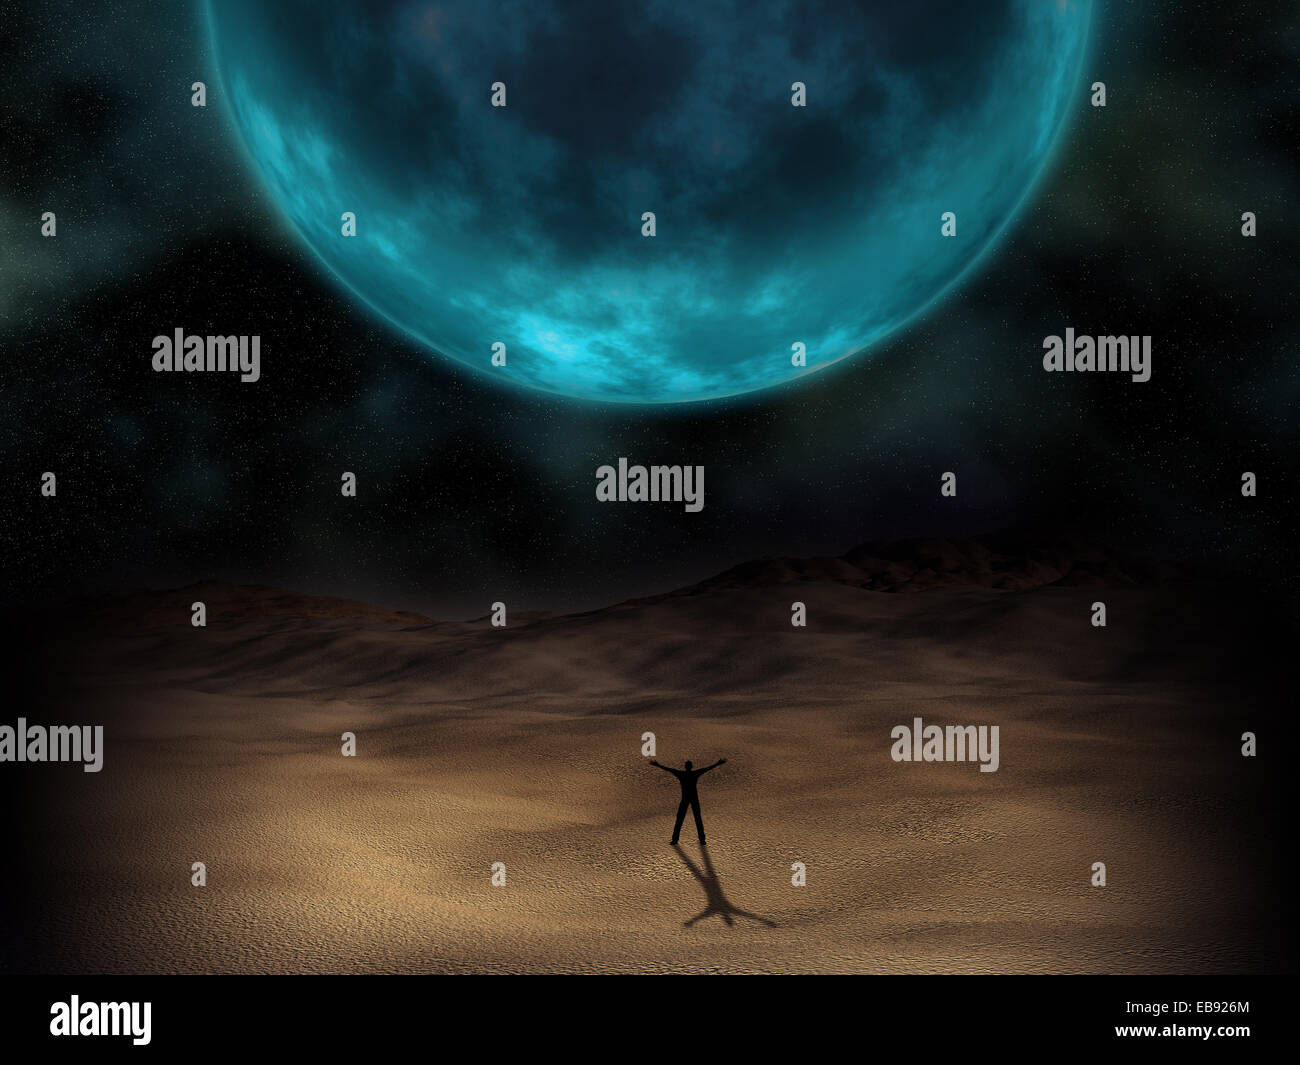 Silhouette of a man stood beneath a surreal planet Stock Photo